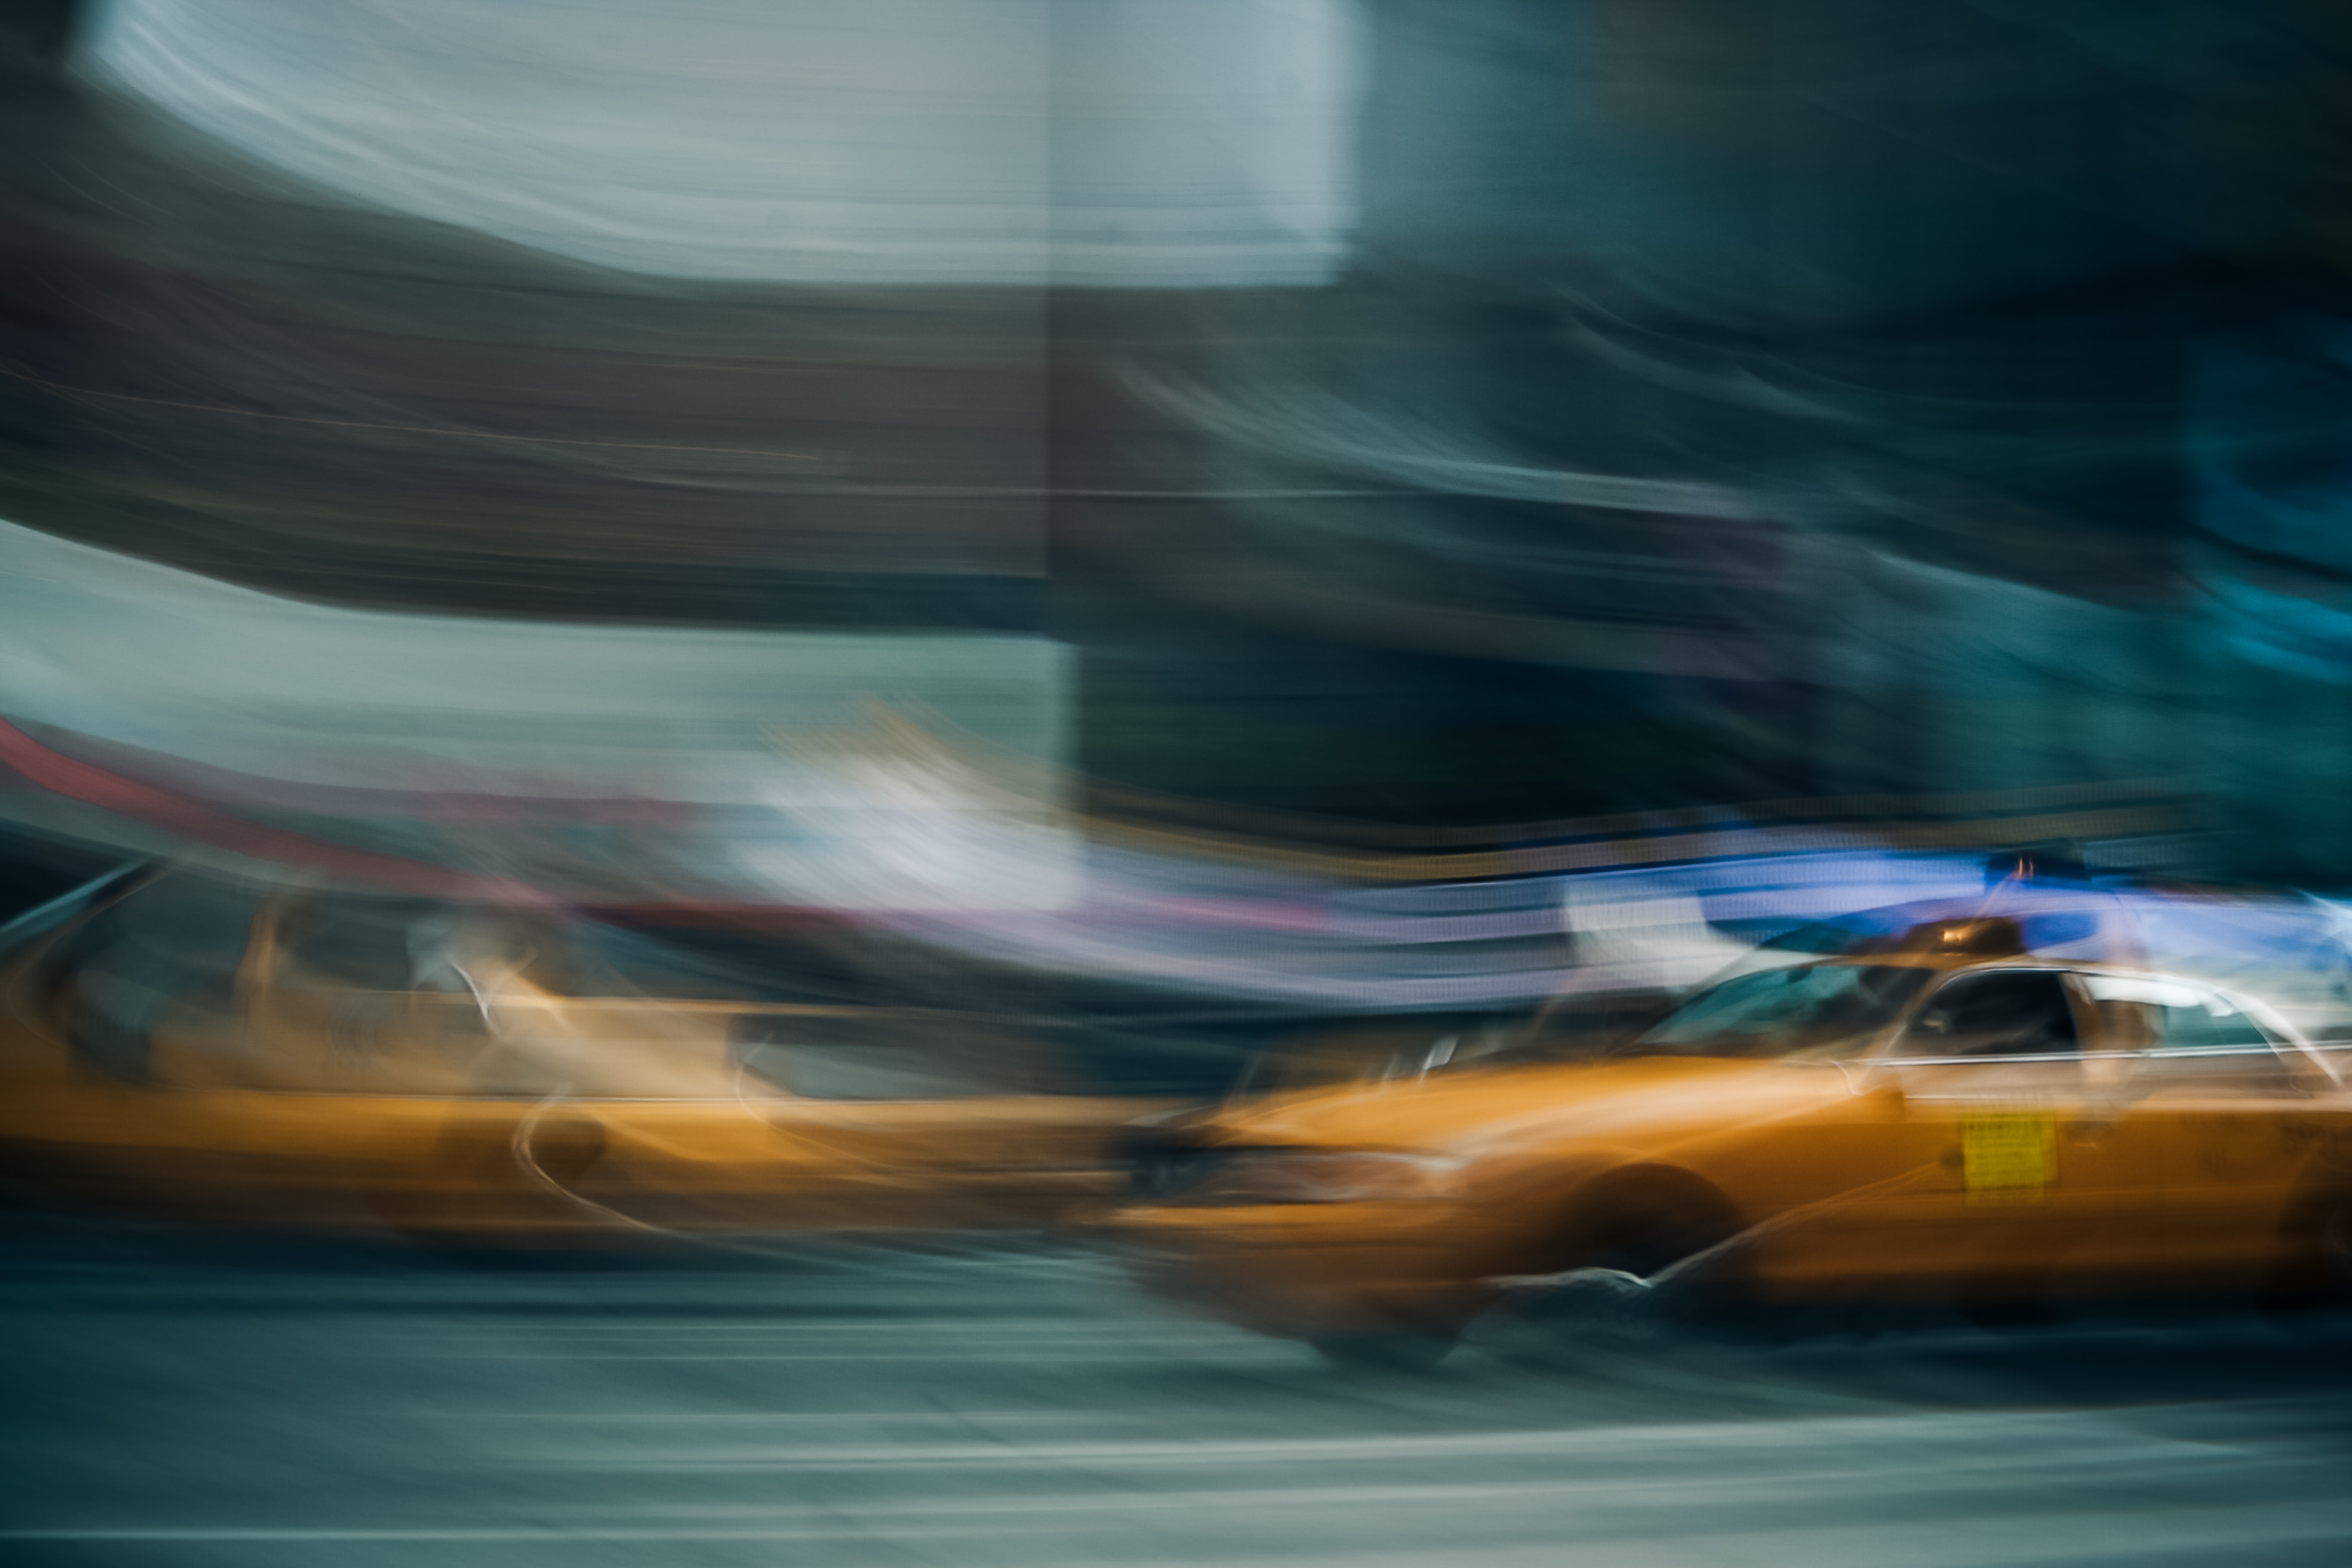 A blurry shot of a yellow taxi cab in New York City